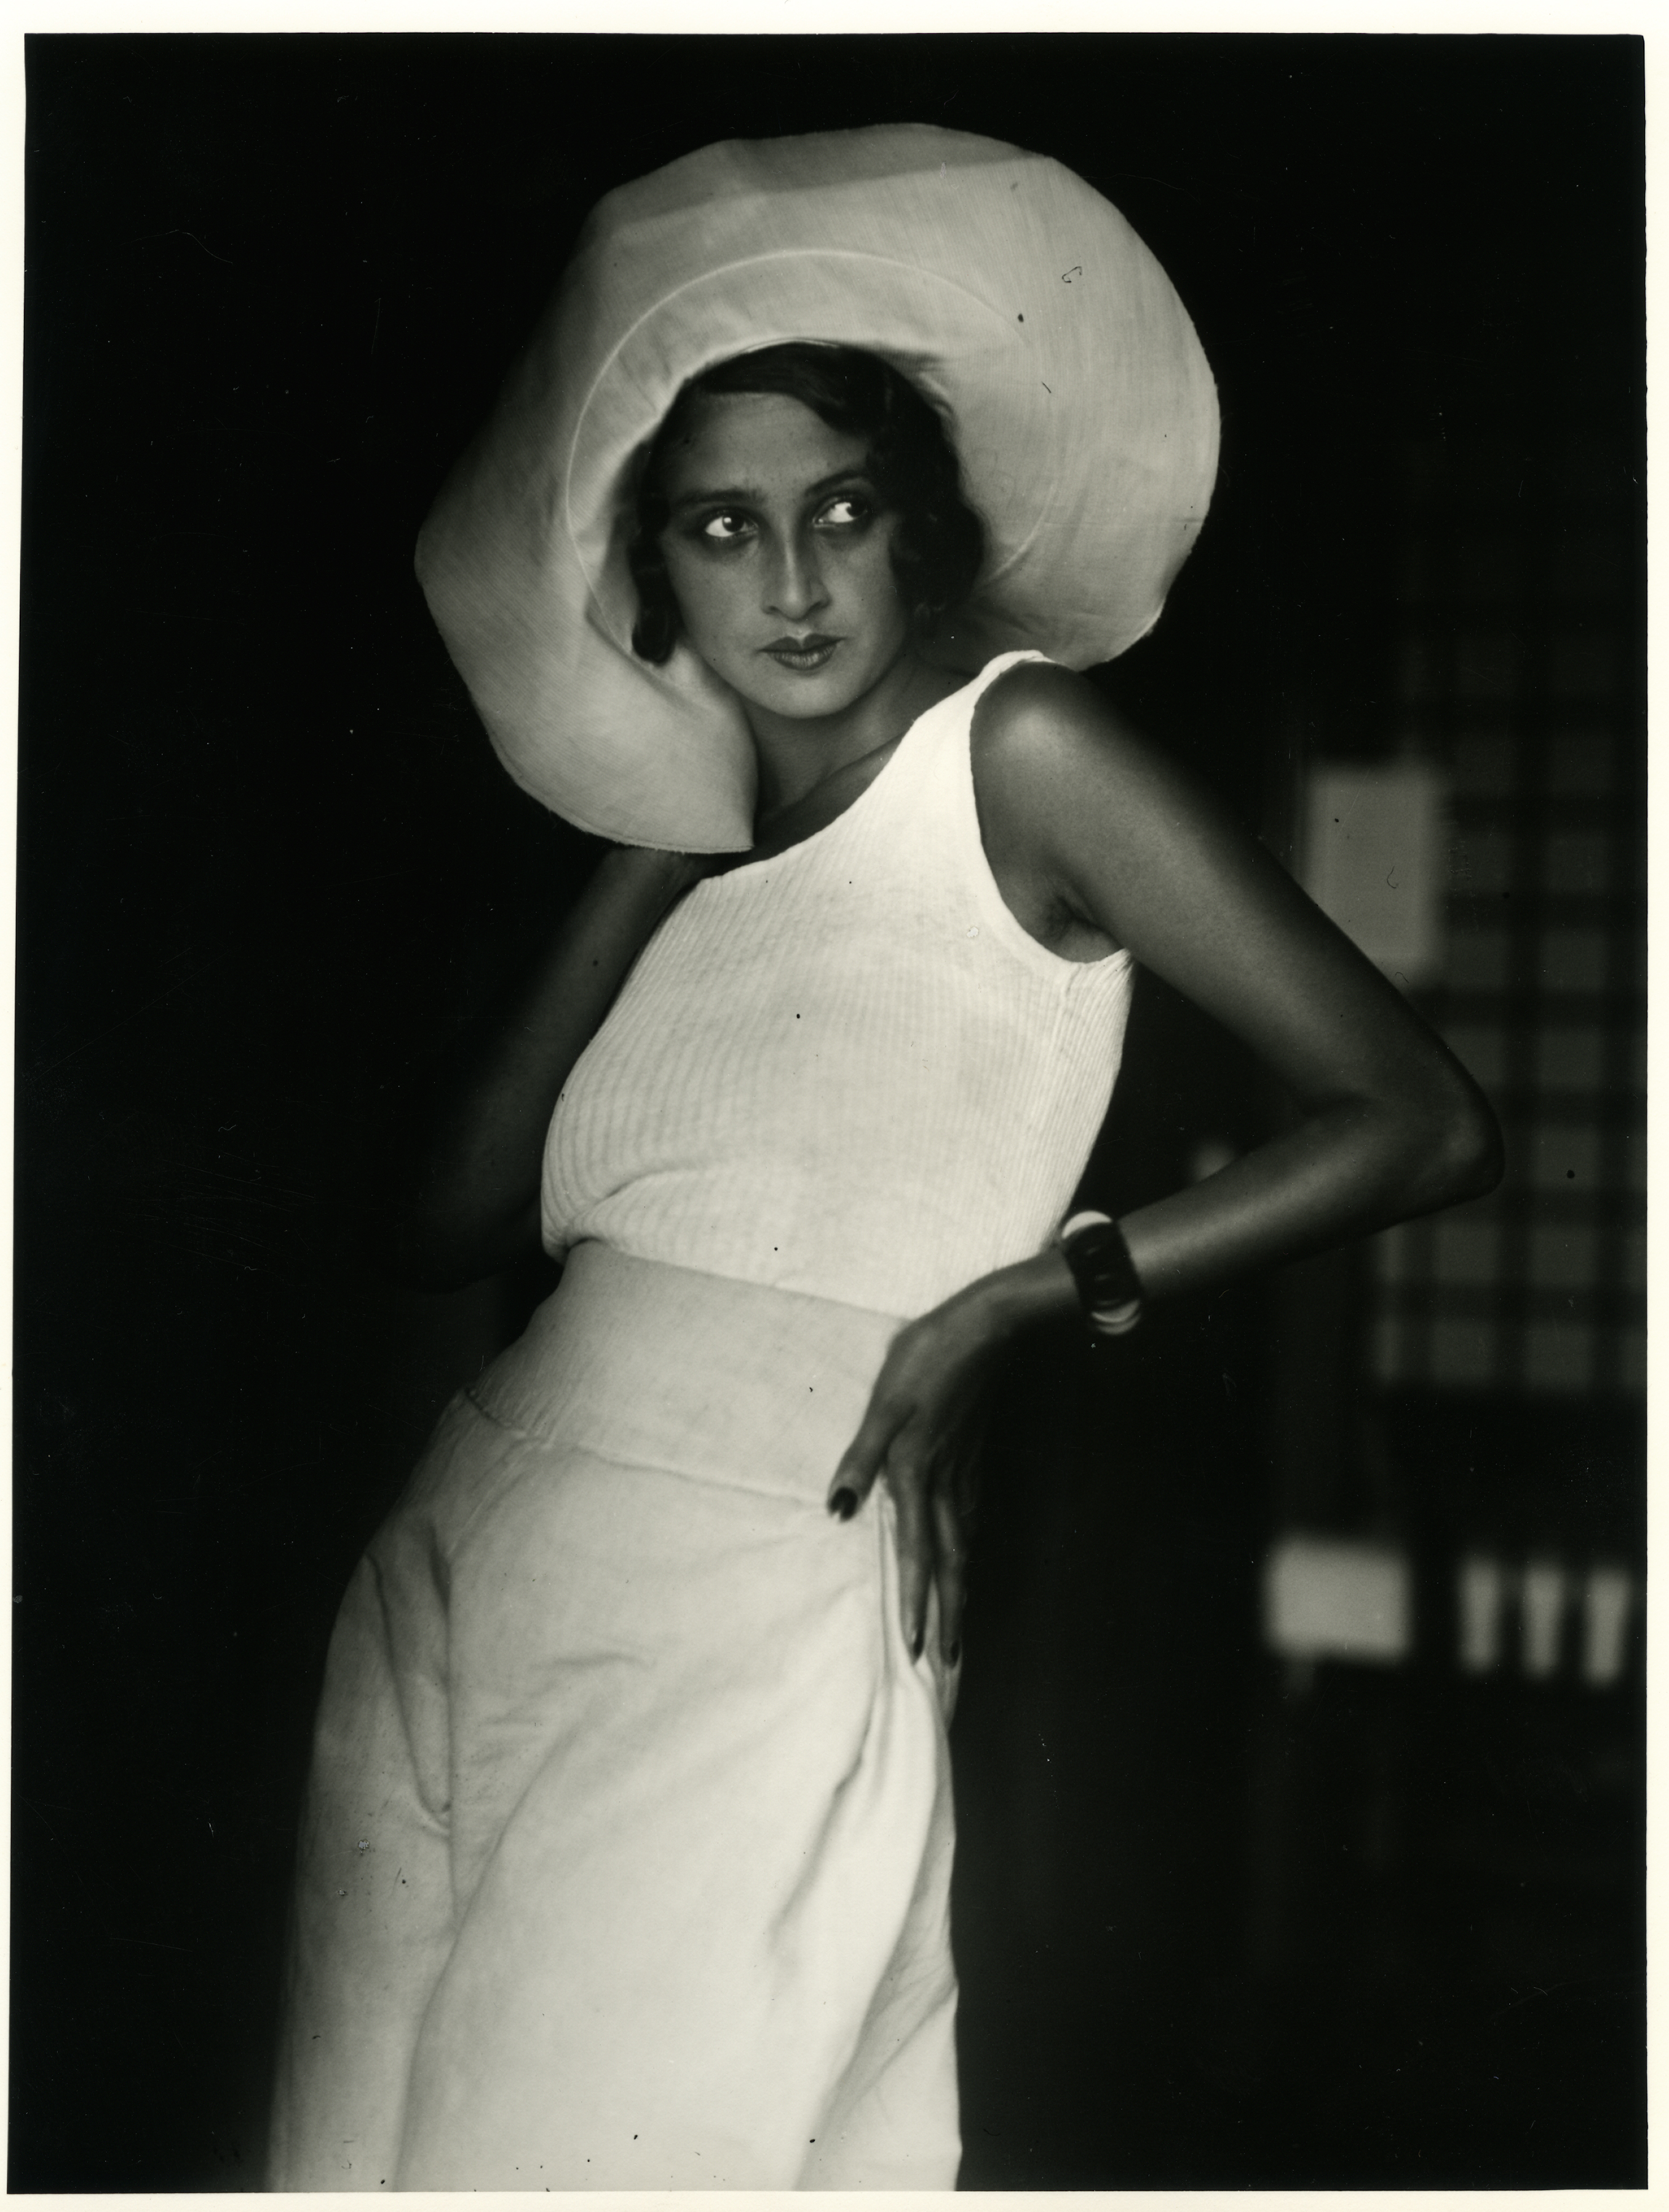 Hip to the times, the new woman of 1930 was Lartigue's model Renée Perle.